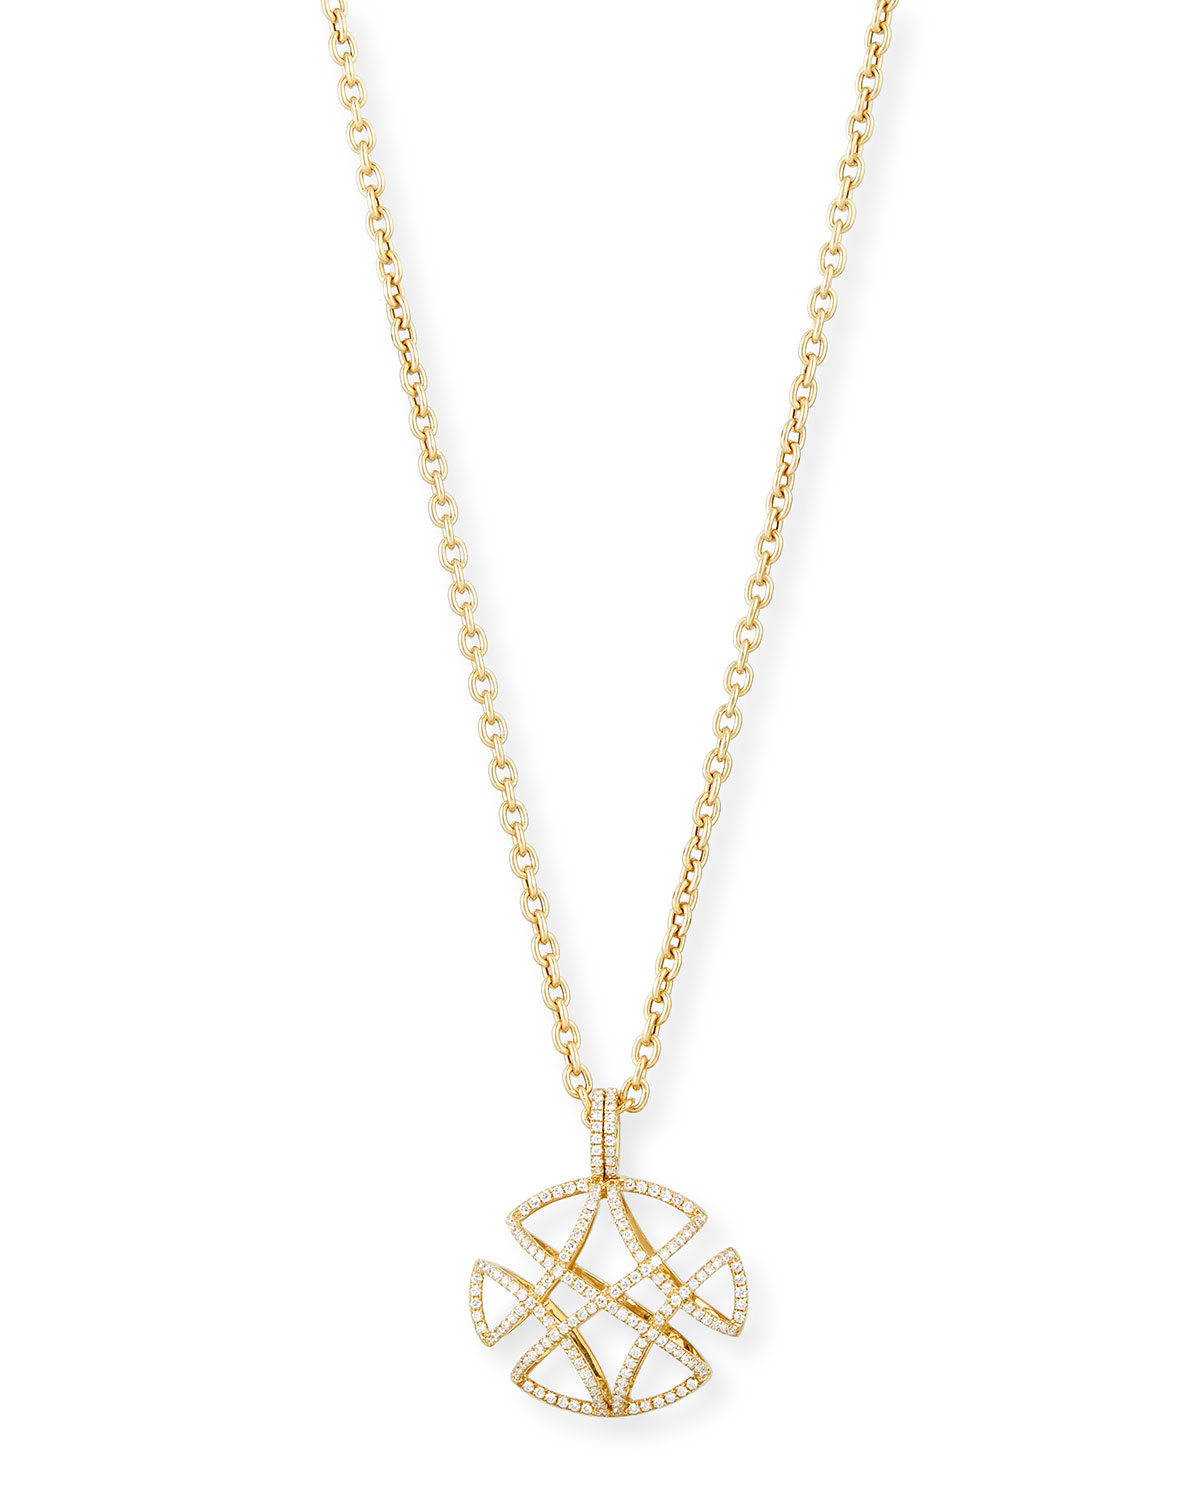 "GOSHWARA FREEDOM PAVÉ DIAMOND PENDANT NECKLACE, 30""L"